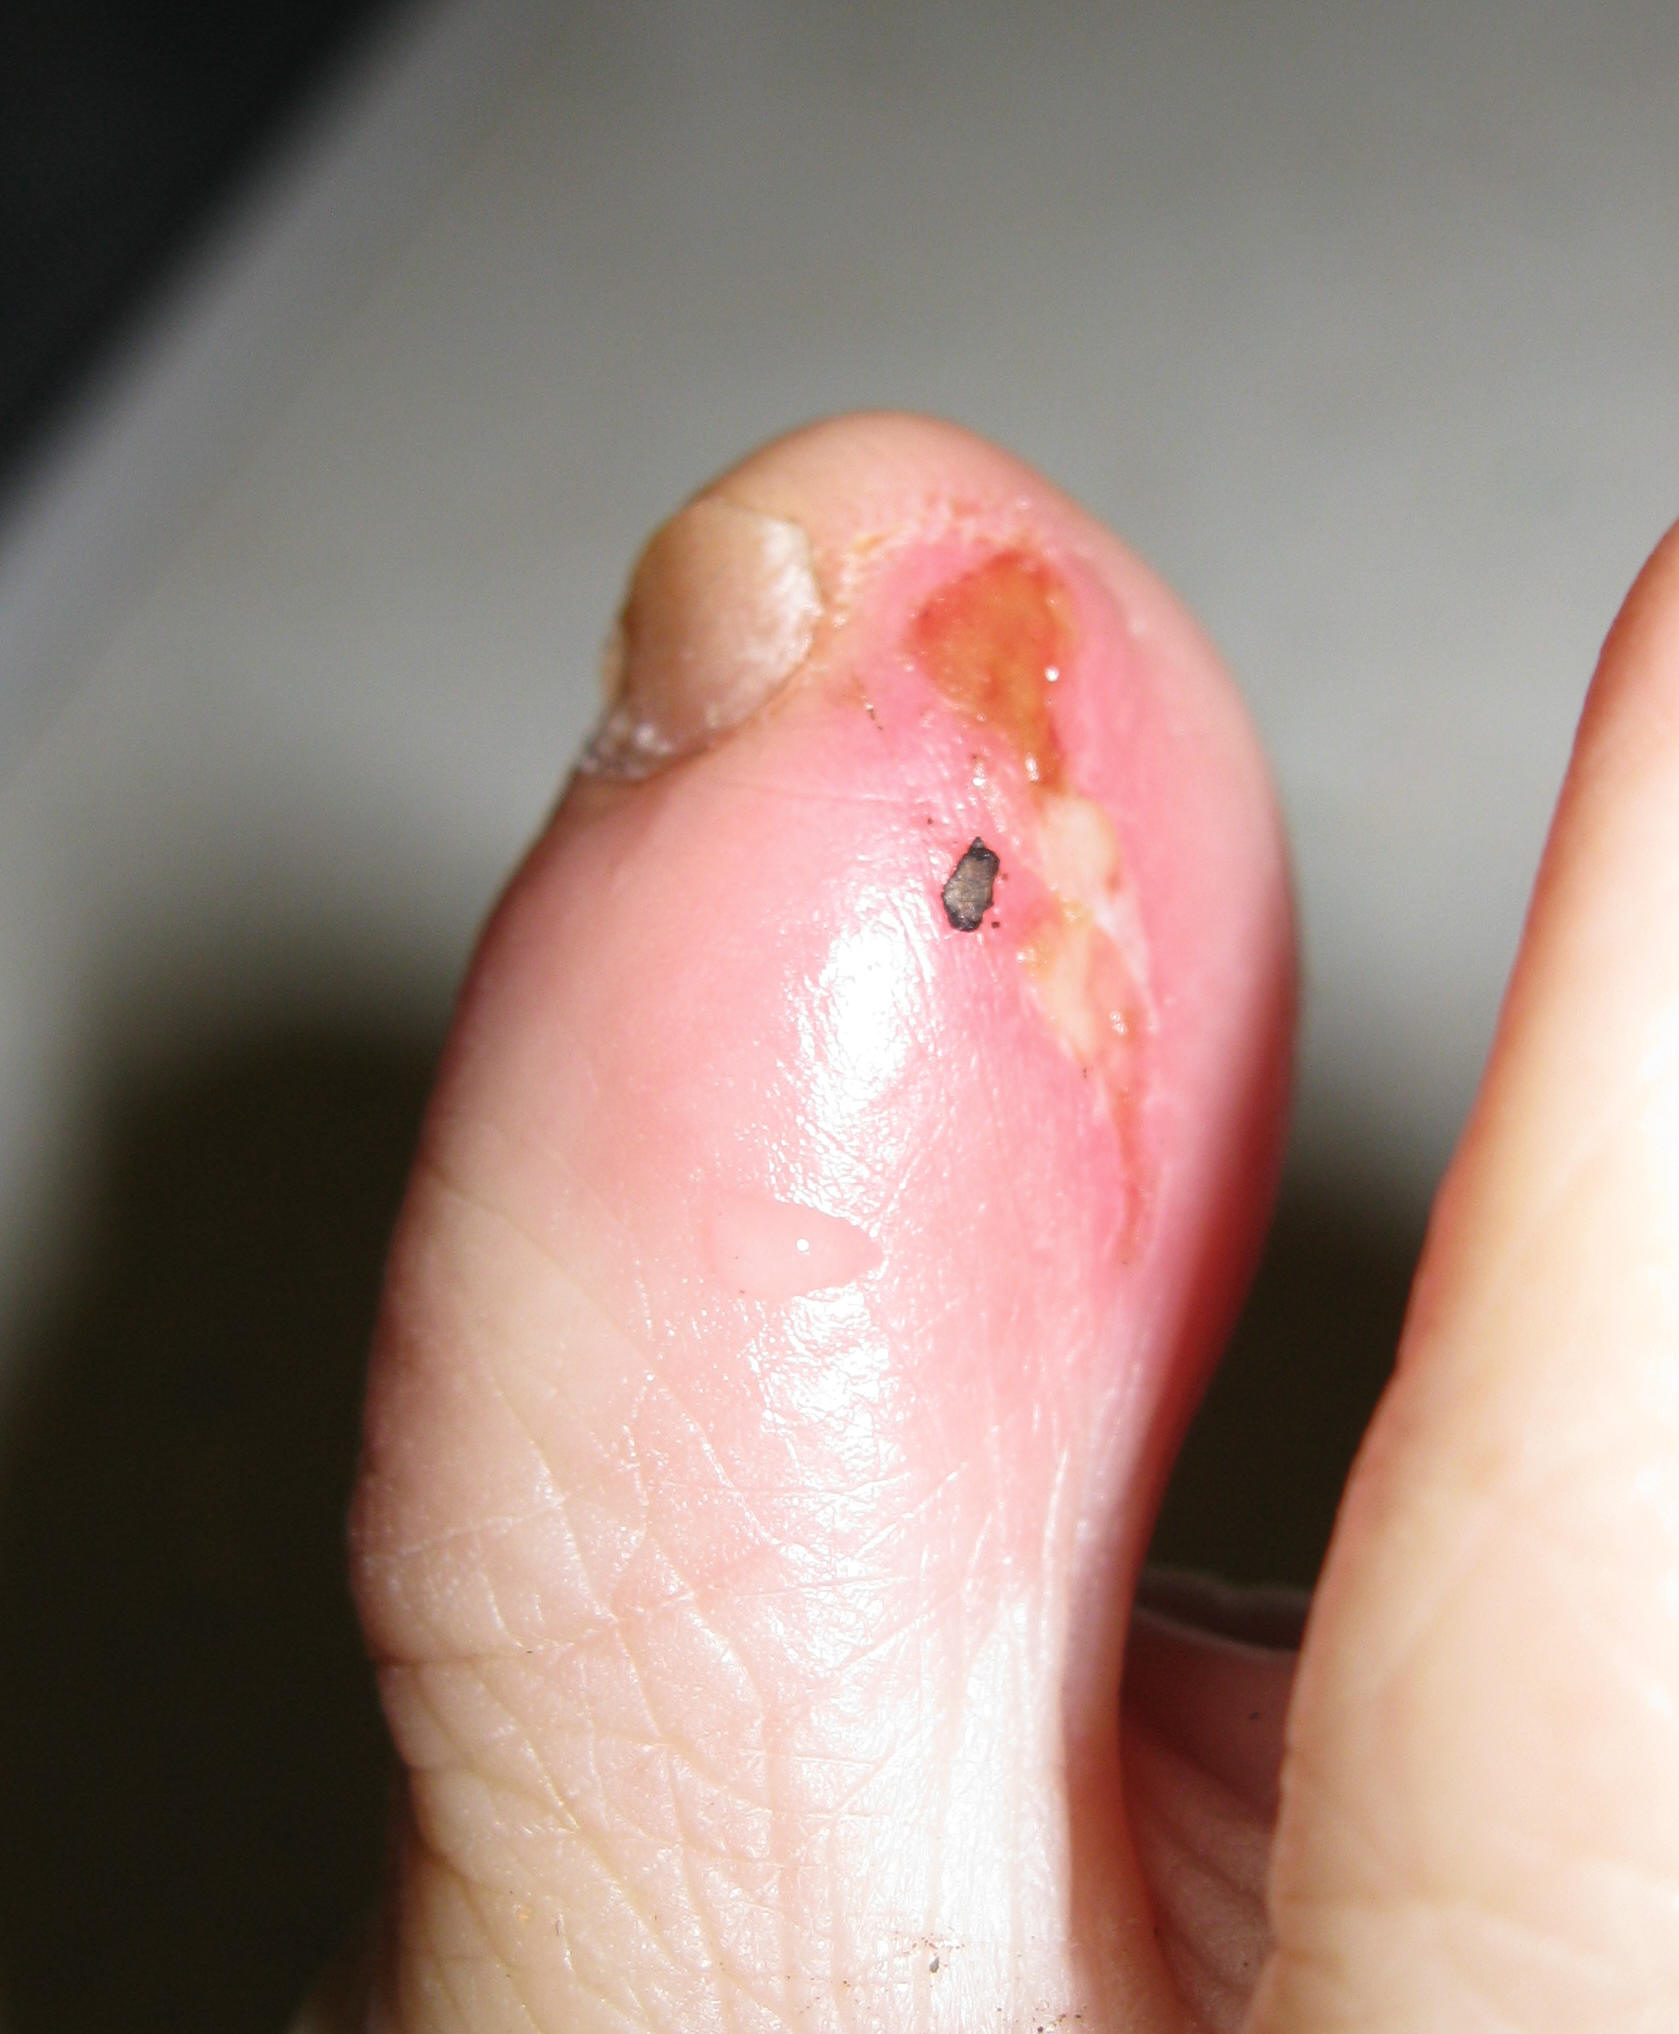 MRSA in small wound or cut